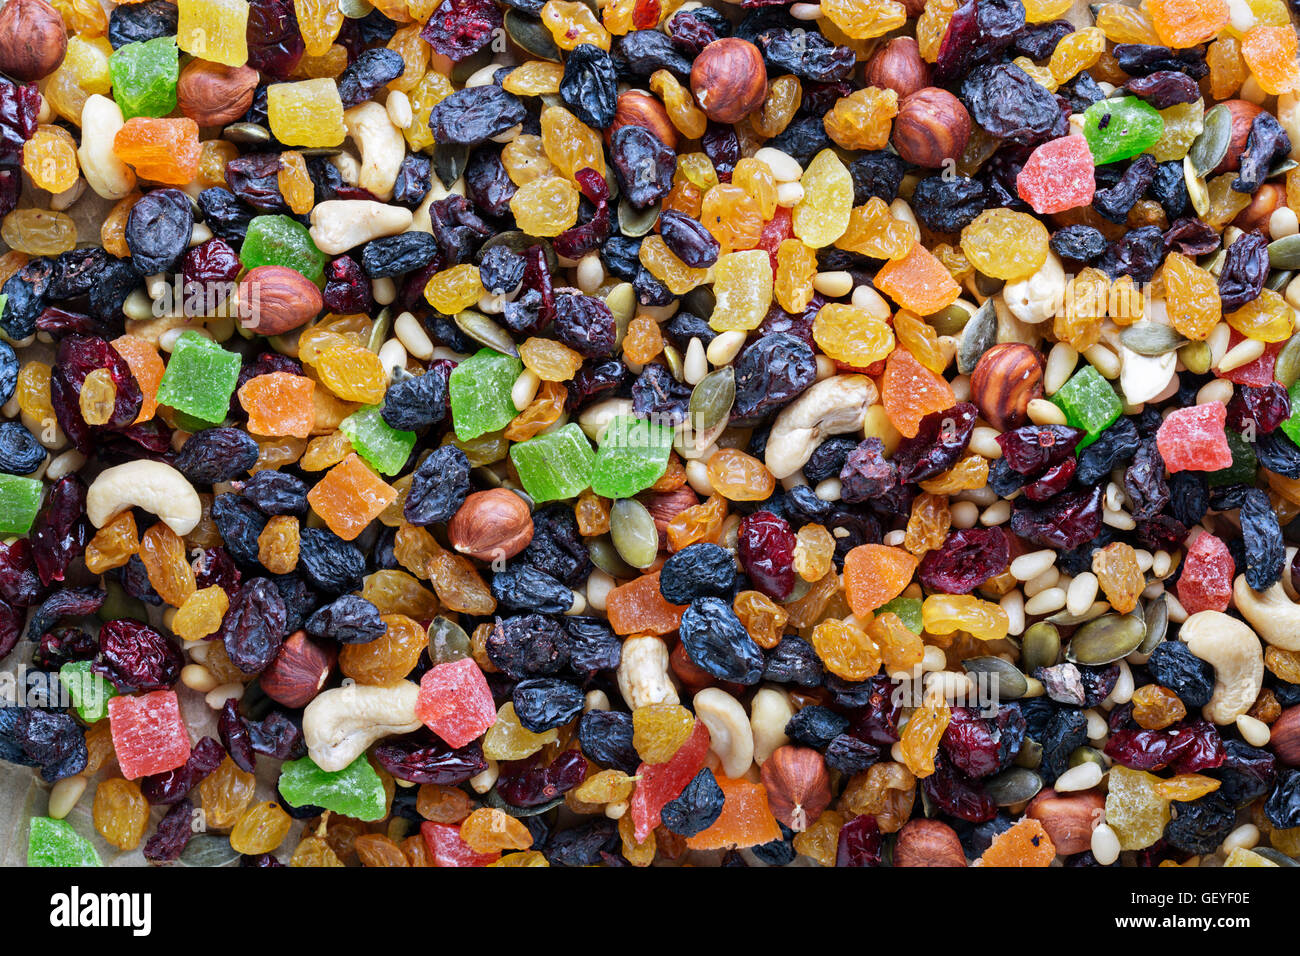 Mixed nuts and fruits in a bowl - Stock Image